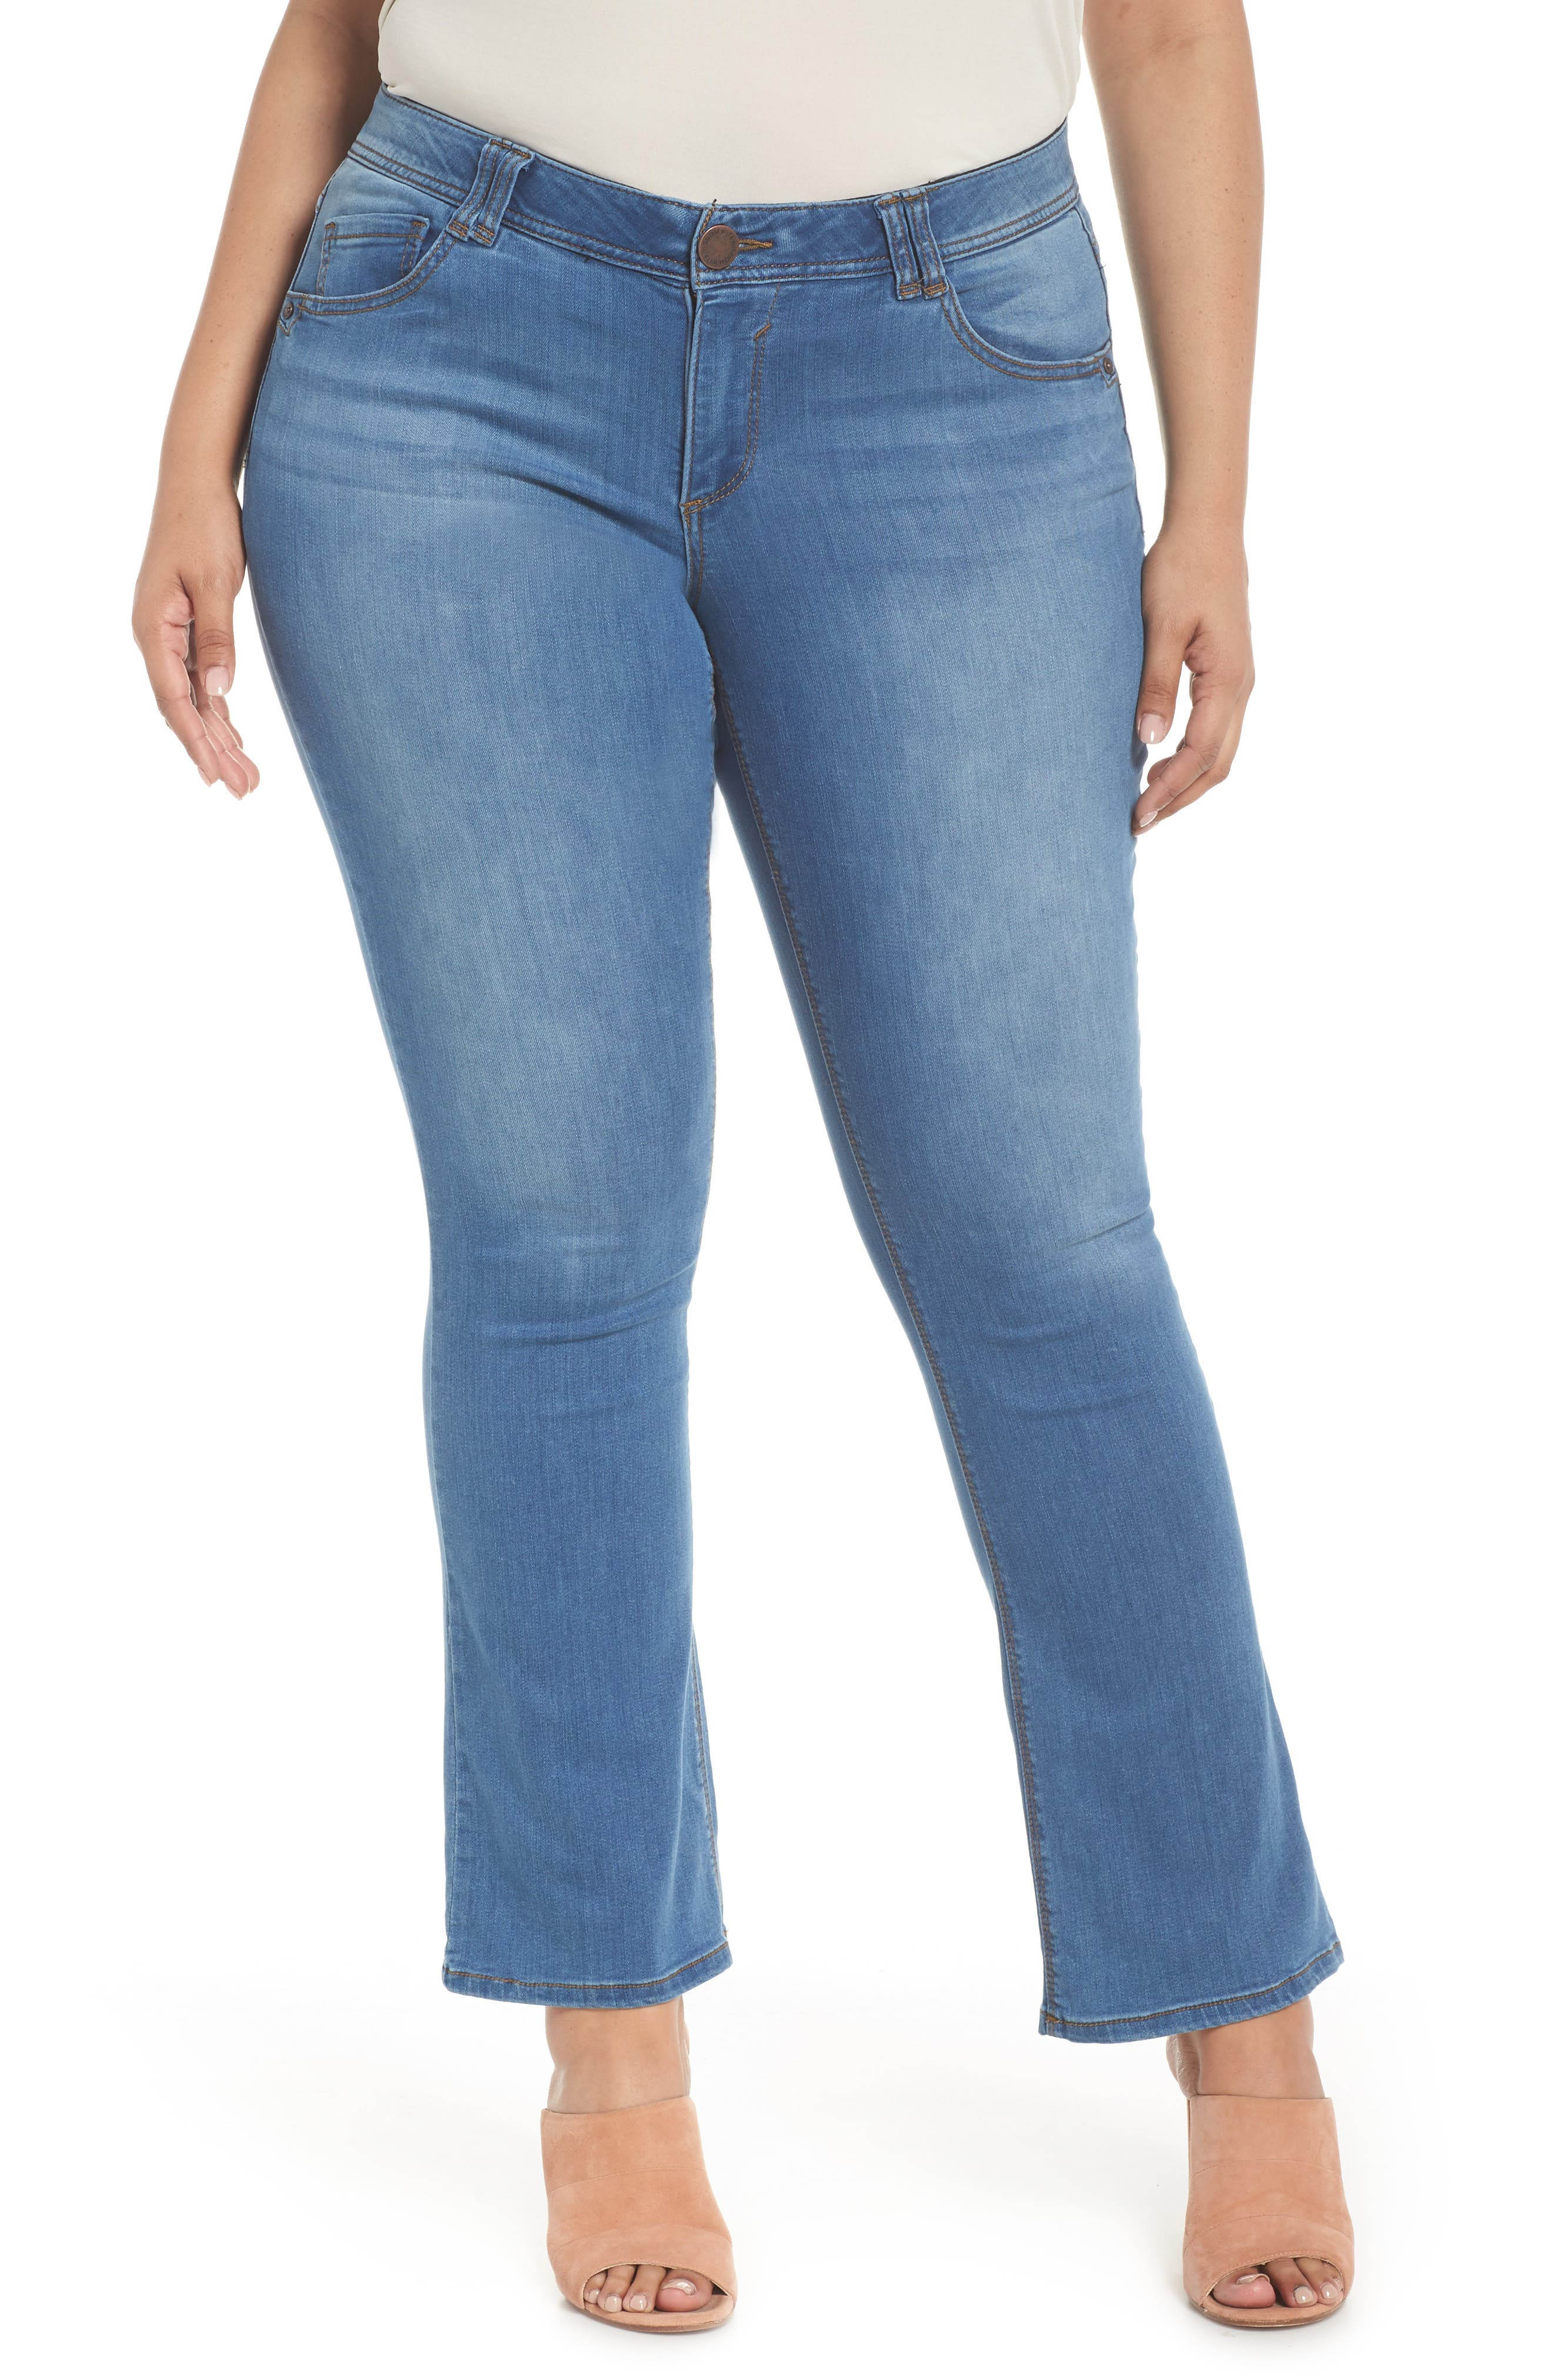 Ab-solution Luxe Touch Bootcut Jeans,                             Main thumbnail 1, color,                             458